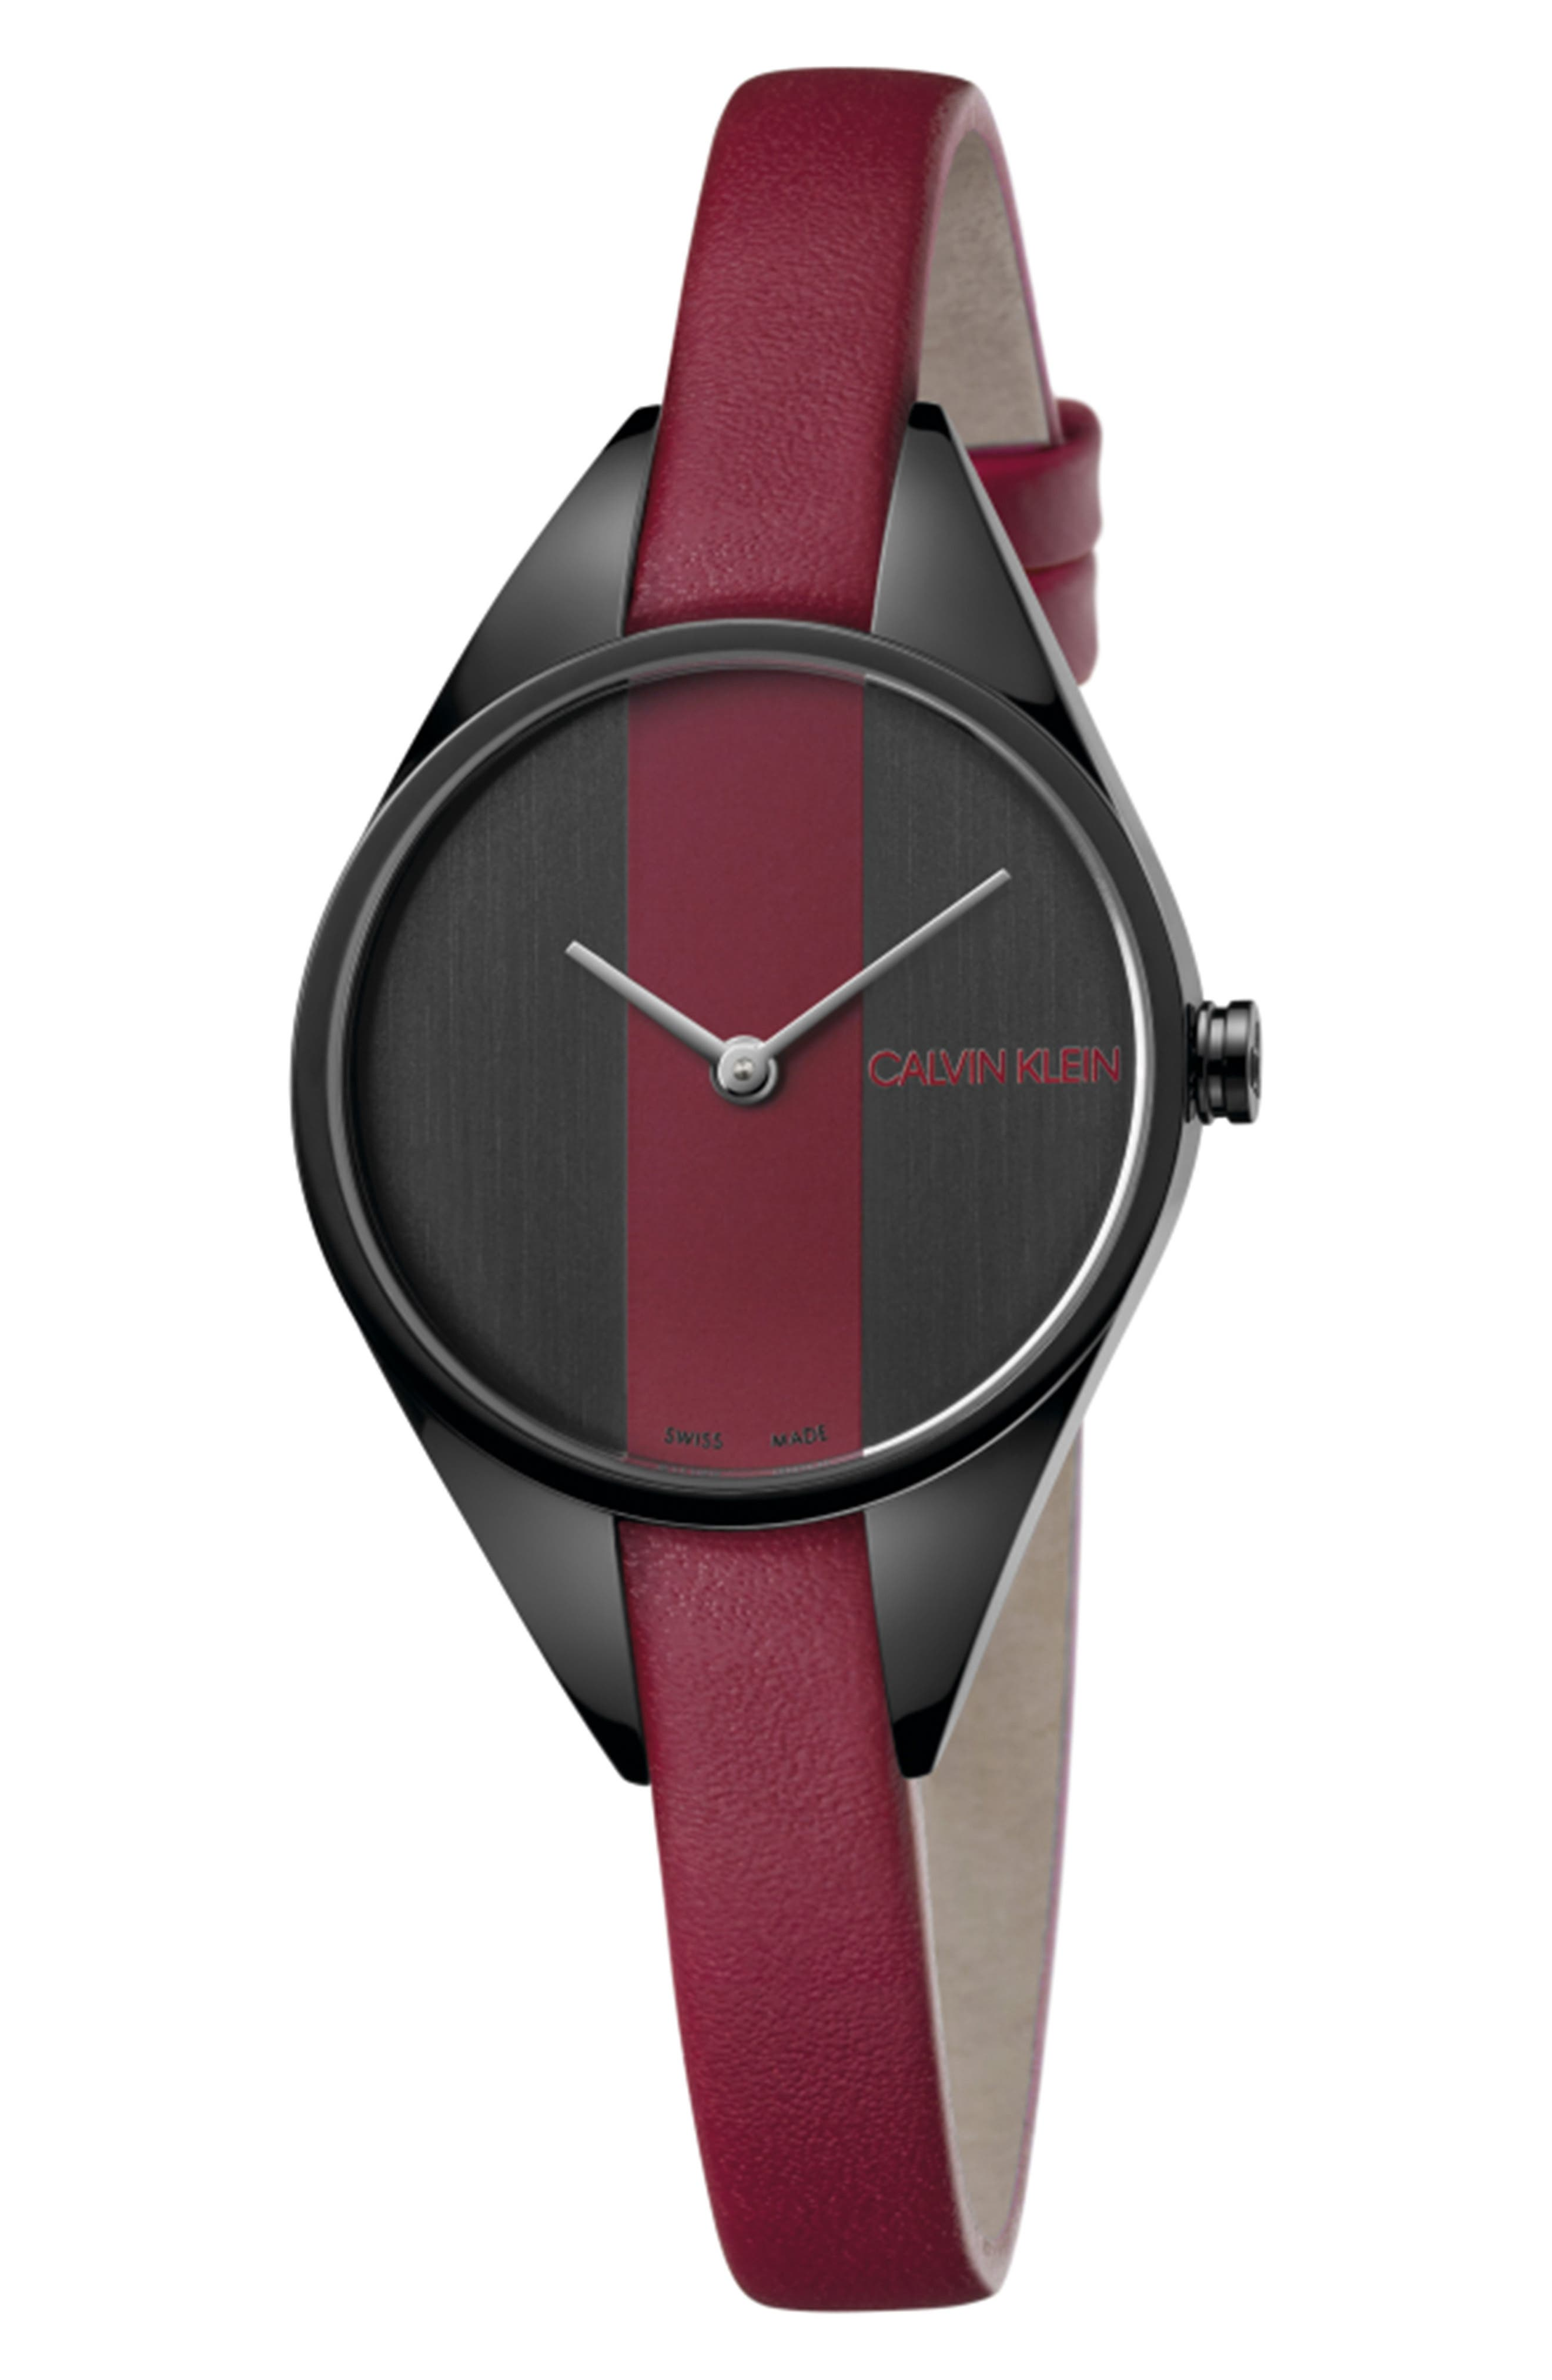 CALVIN KLEIN, Achieve Rebel Leather Band Watch, 29mm, Main thumbnail 1, color, RED/ BLACK